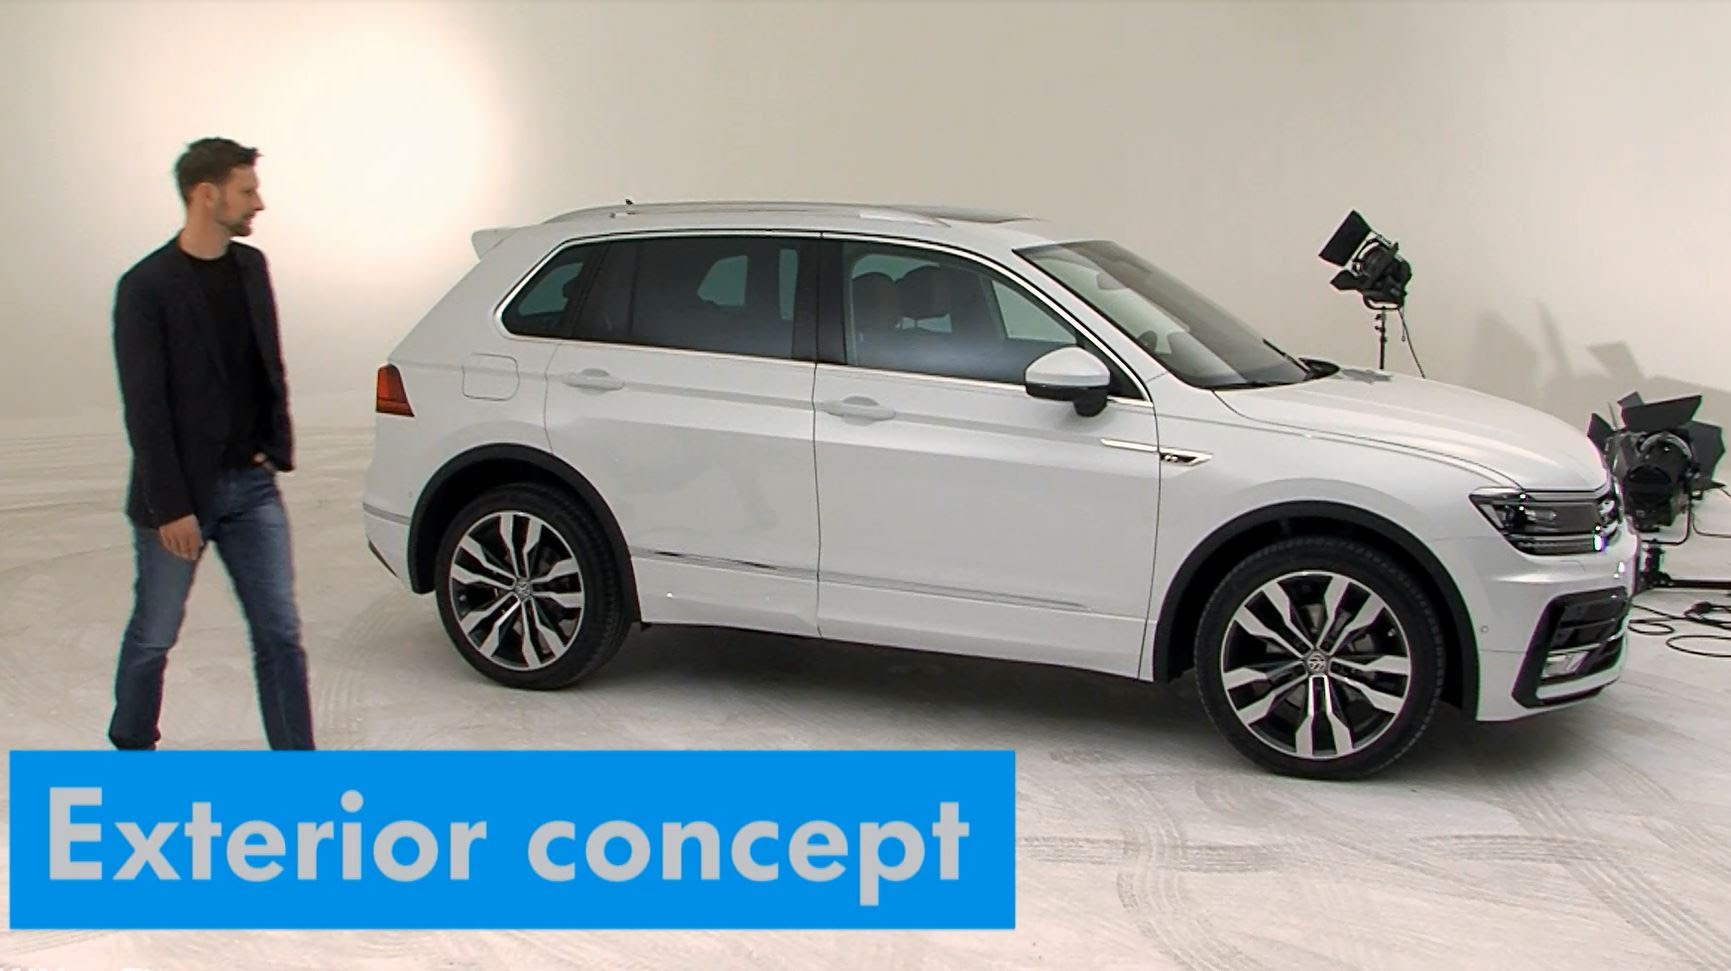 All Types tiguan length : This Designer Explains Why the 2016 VW Tiguan Is Not Boring ...